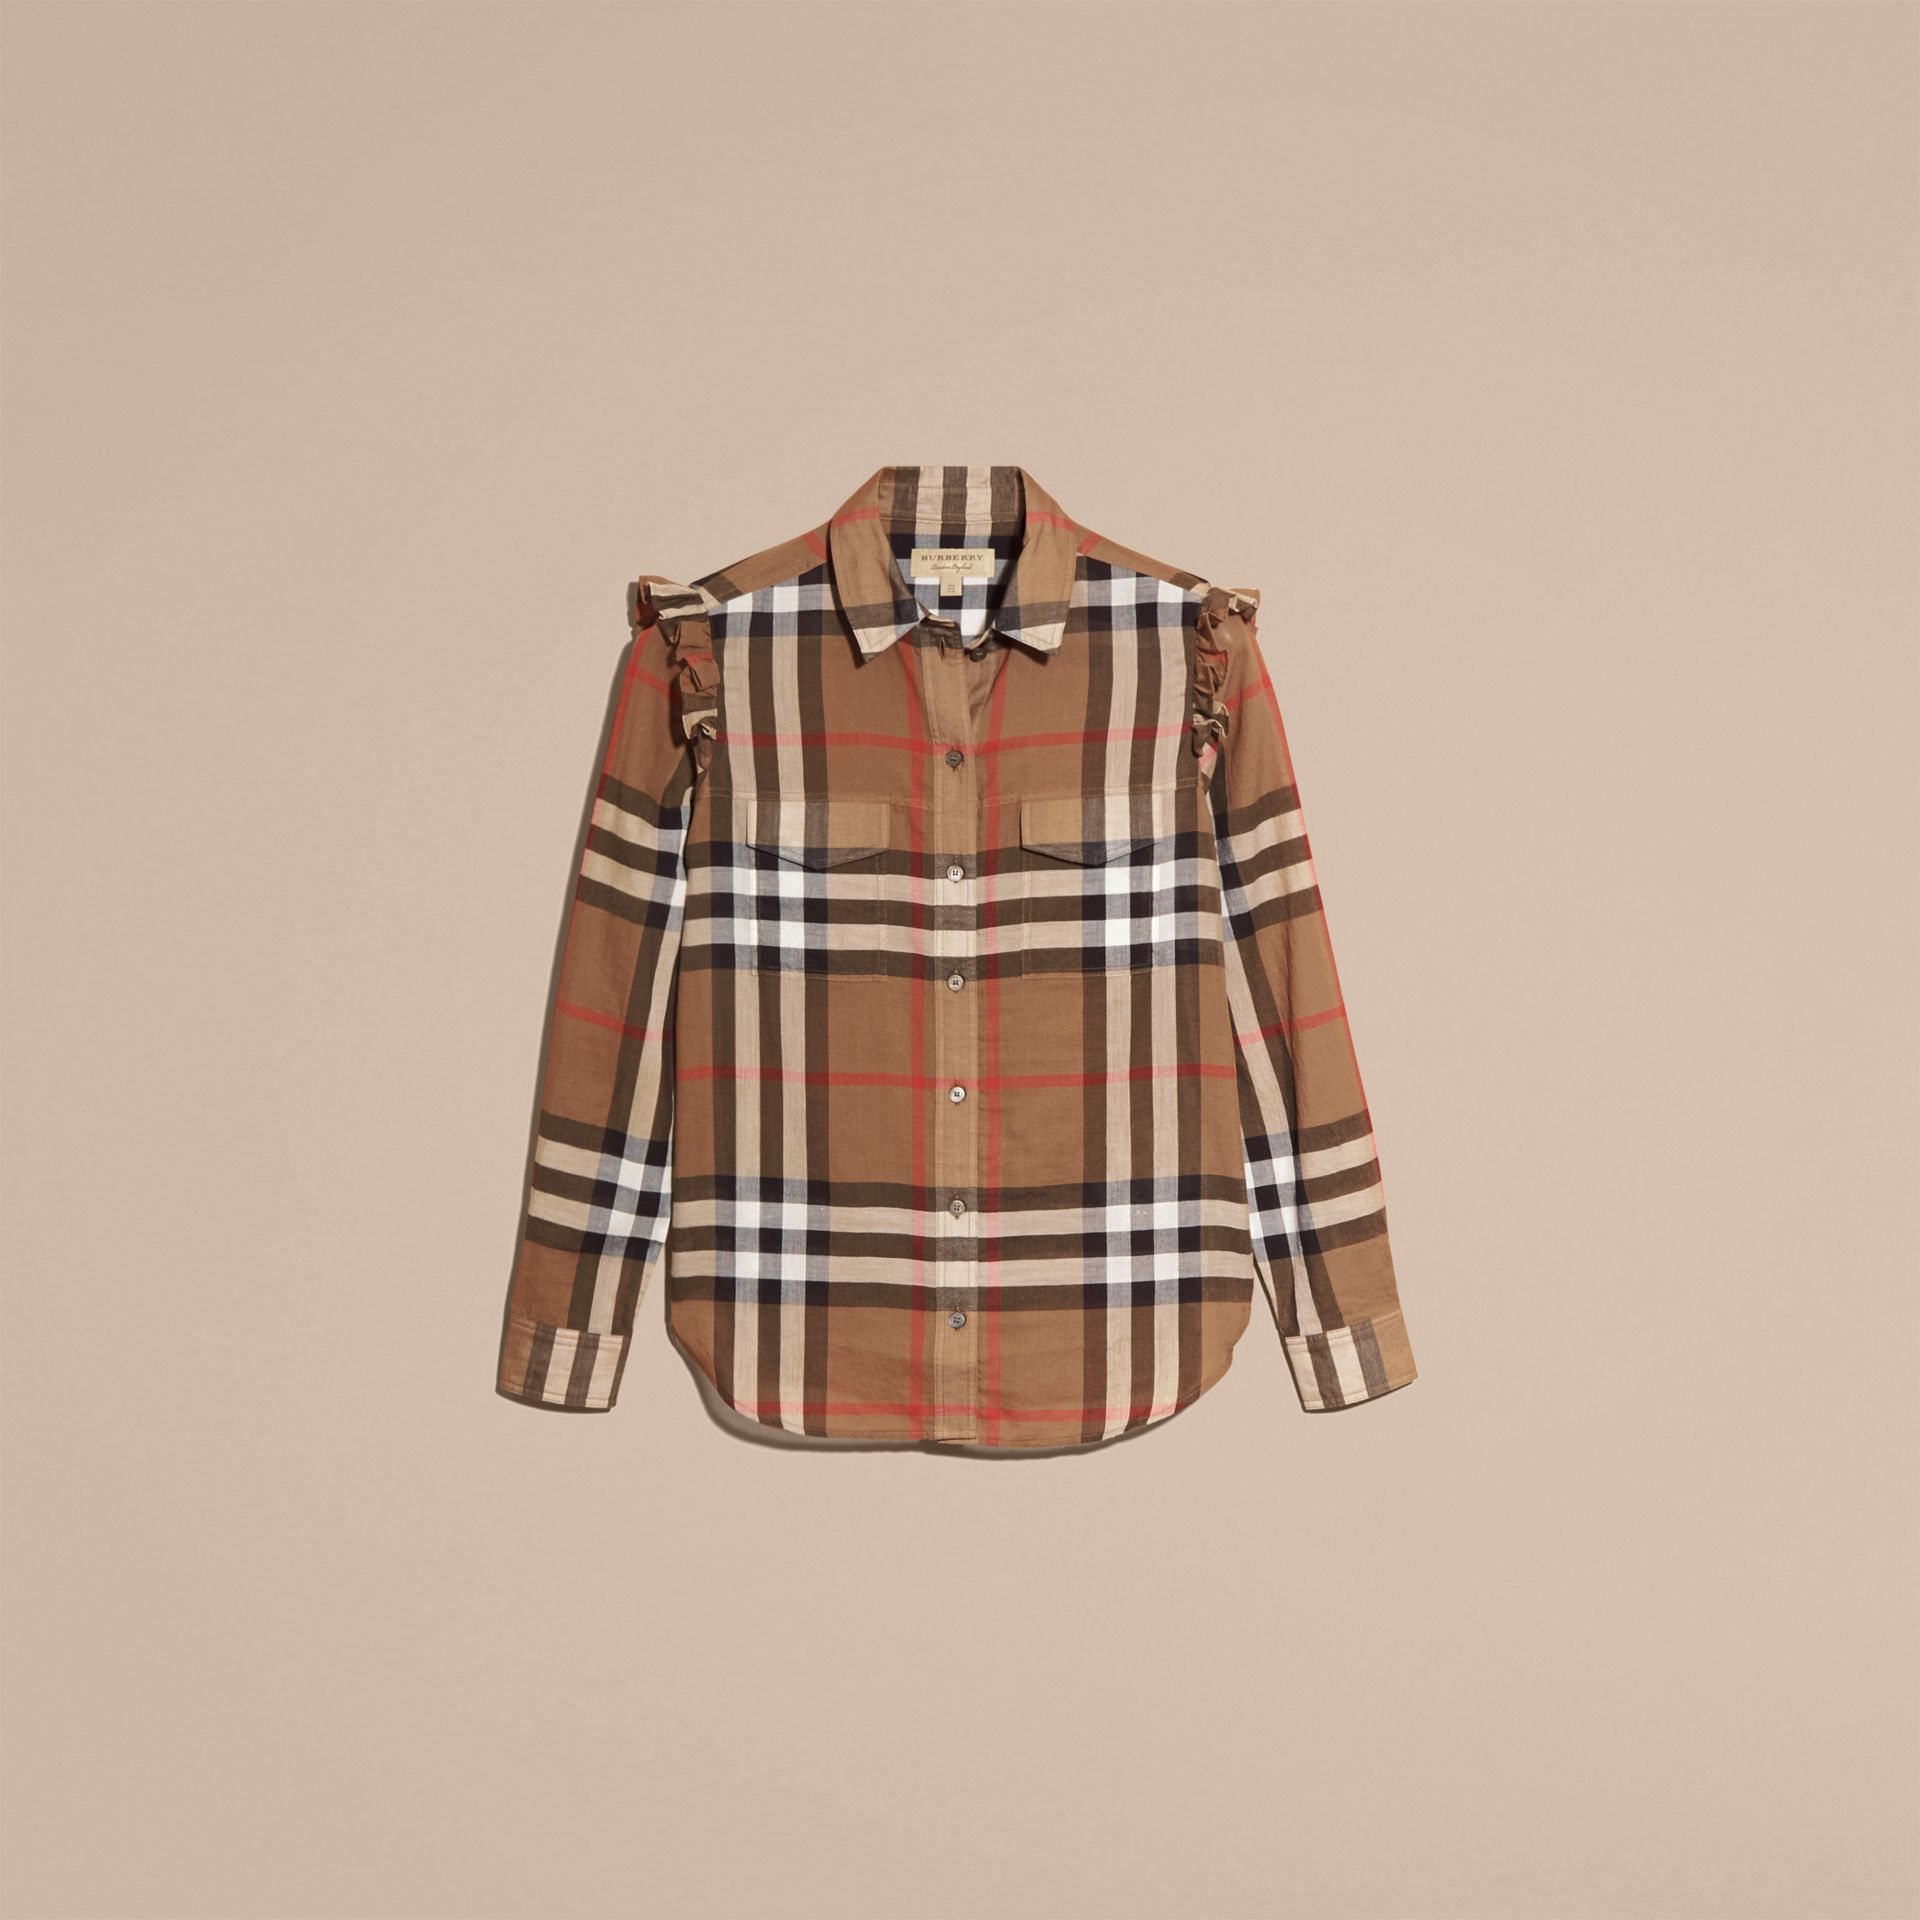 Frill Detail Check Cotton Shirt in Taupe Brown - Women | Burberry - gallery image 4